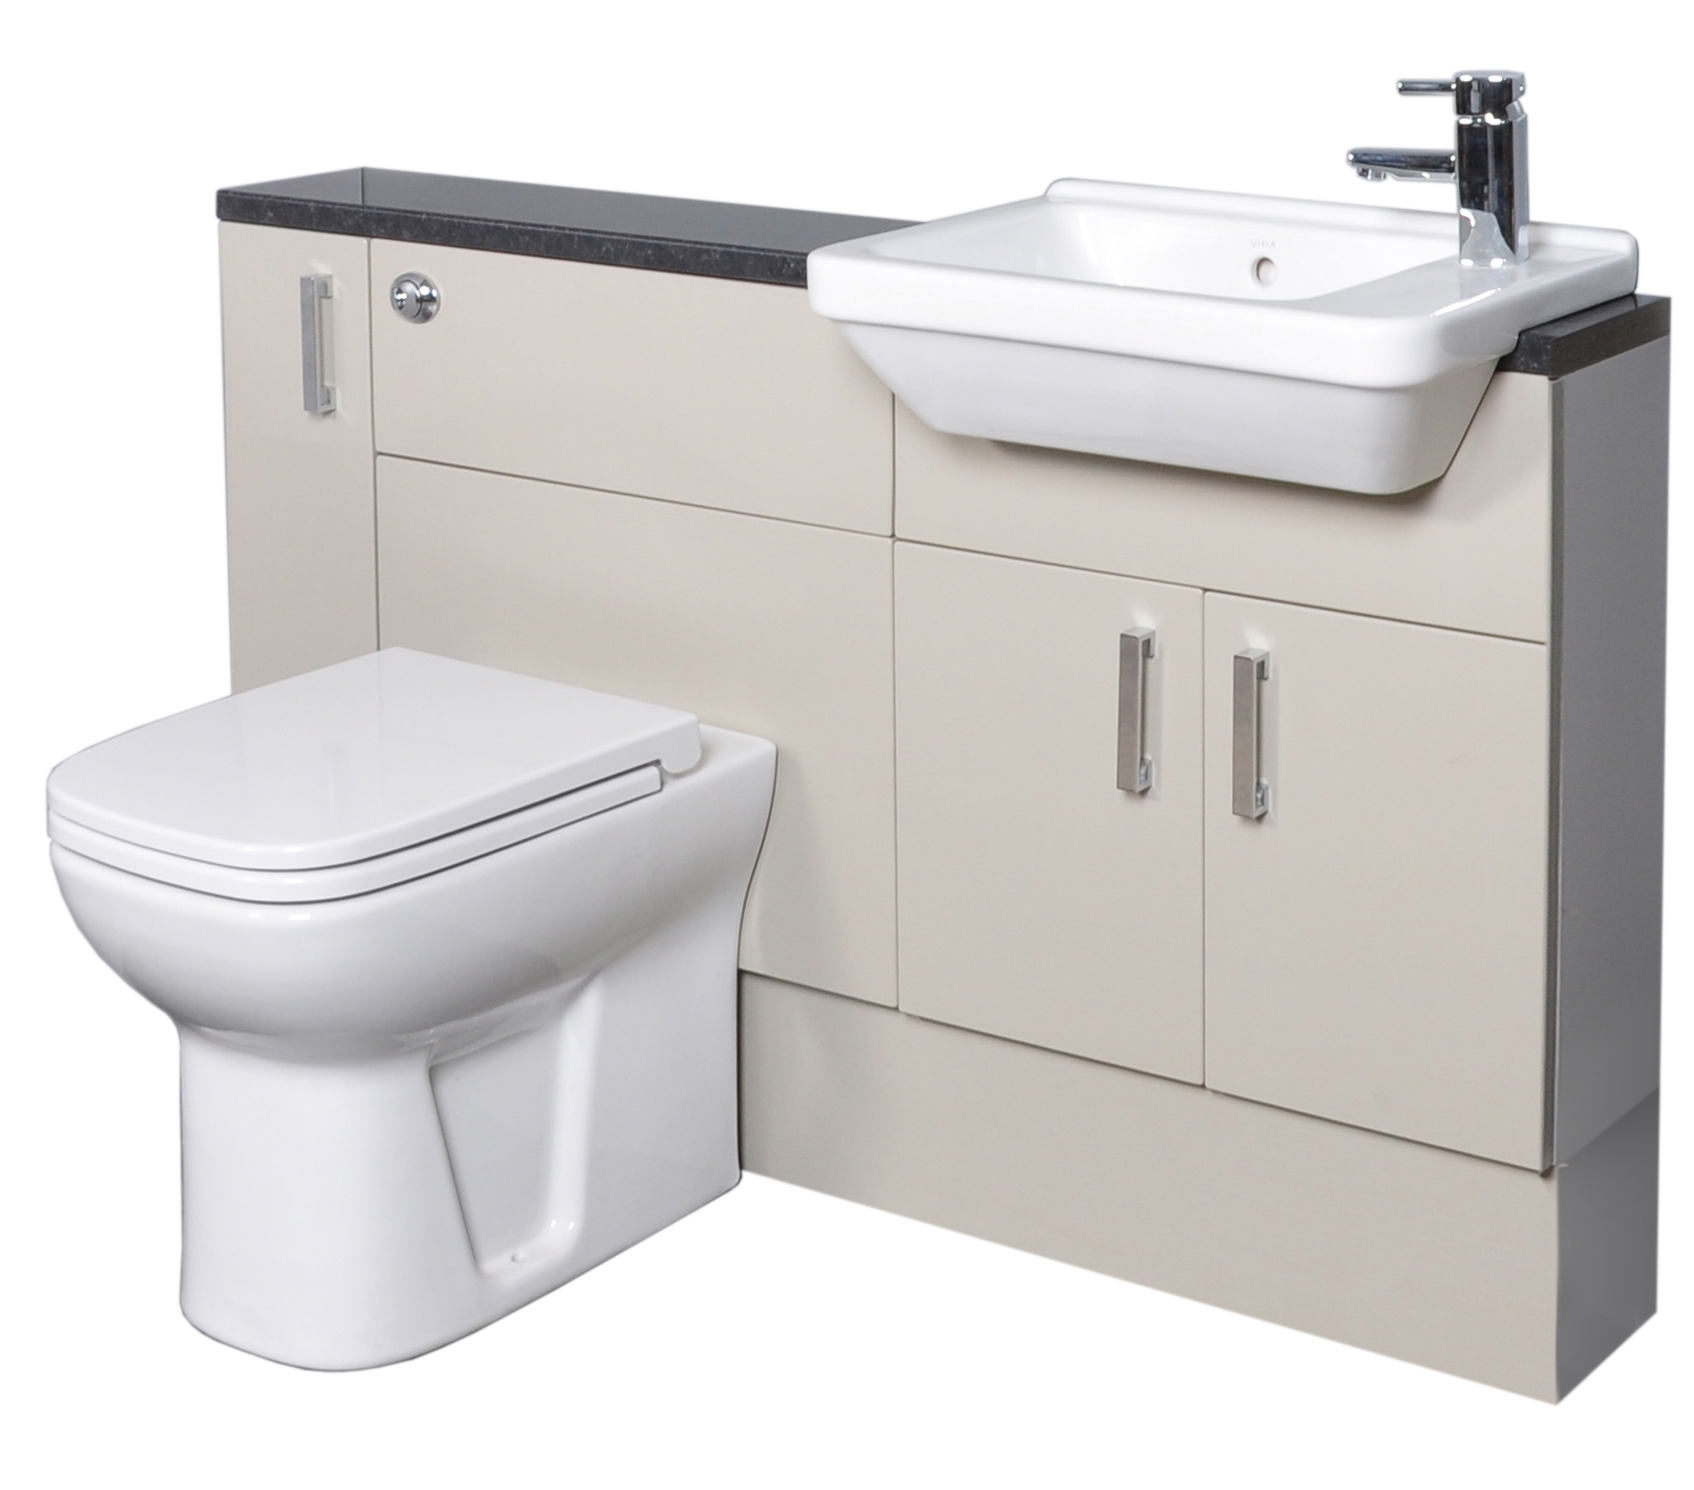 New The Dressage Bathroom Collection By Graff Is Here To Reshape Conventional Bathroom Furniture They Managed To Create An Outstanding  This Is A Fully Customizable Vanity Piece The Ultraslim Design Of The Console Could Fit Into Any